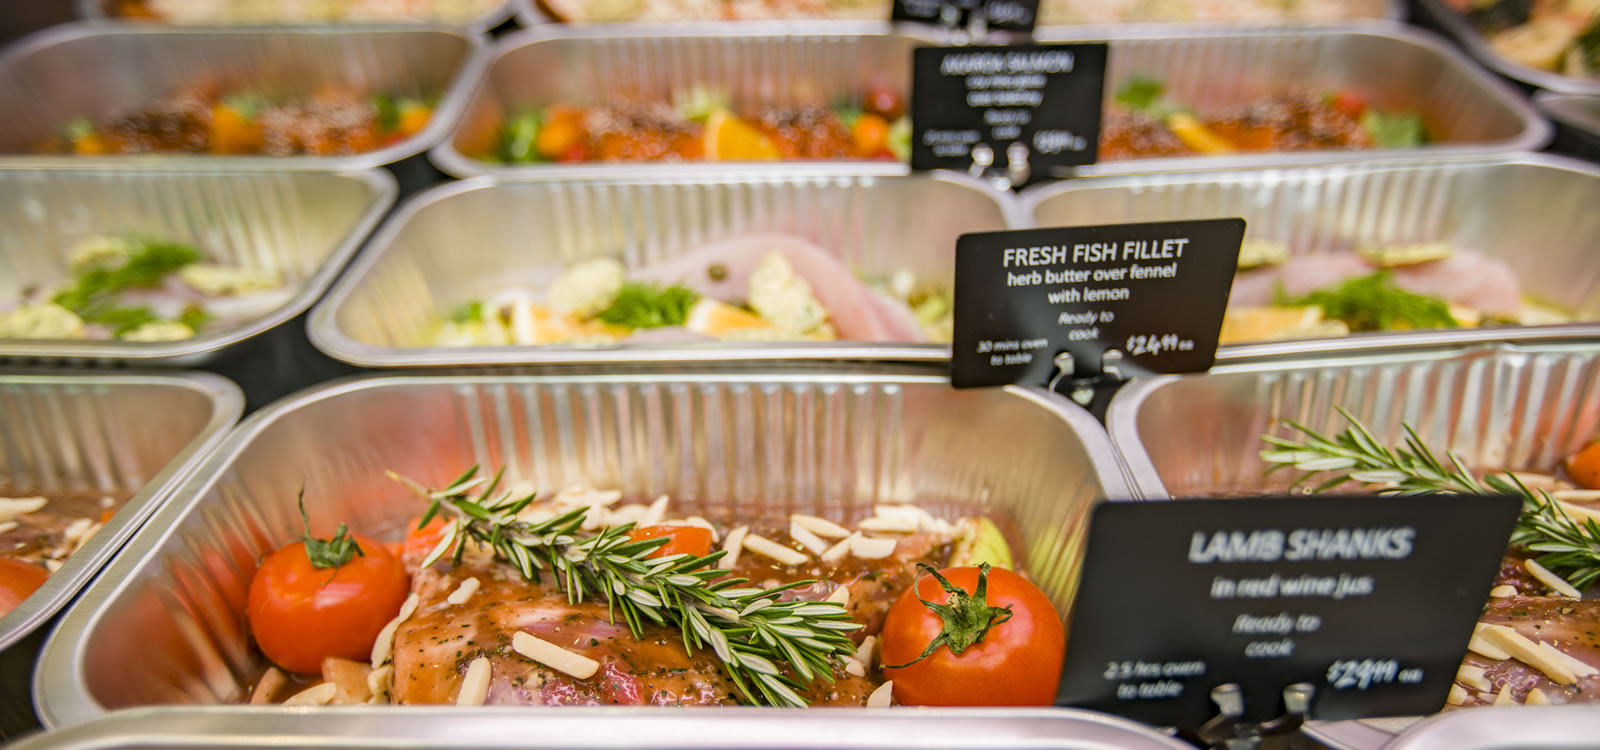 Ready Cook Meals from Raeward Fresh Kitchen